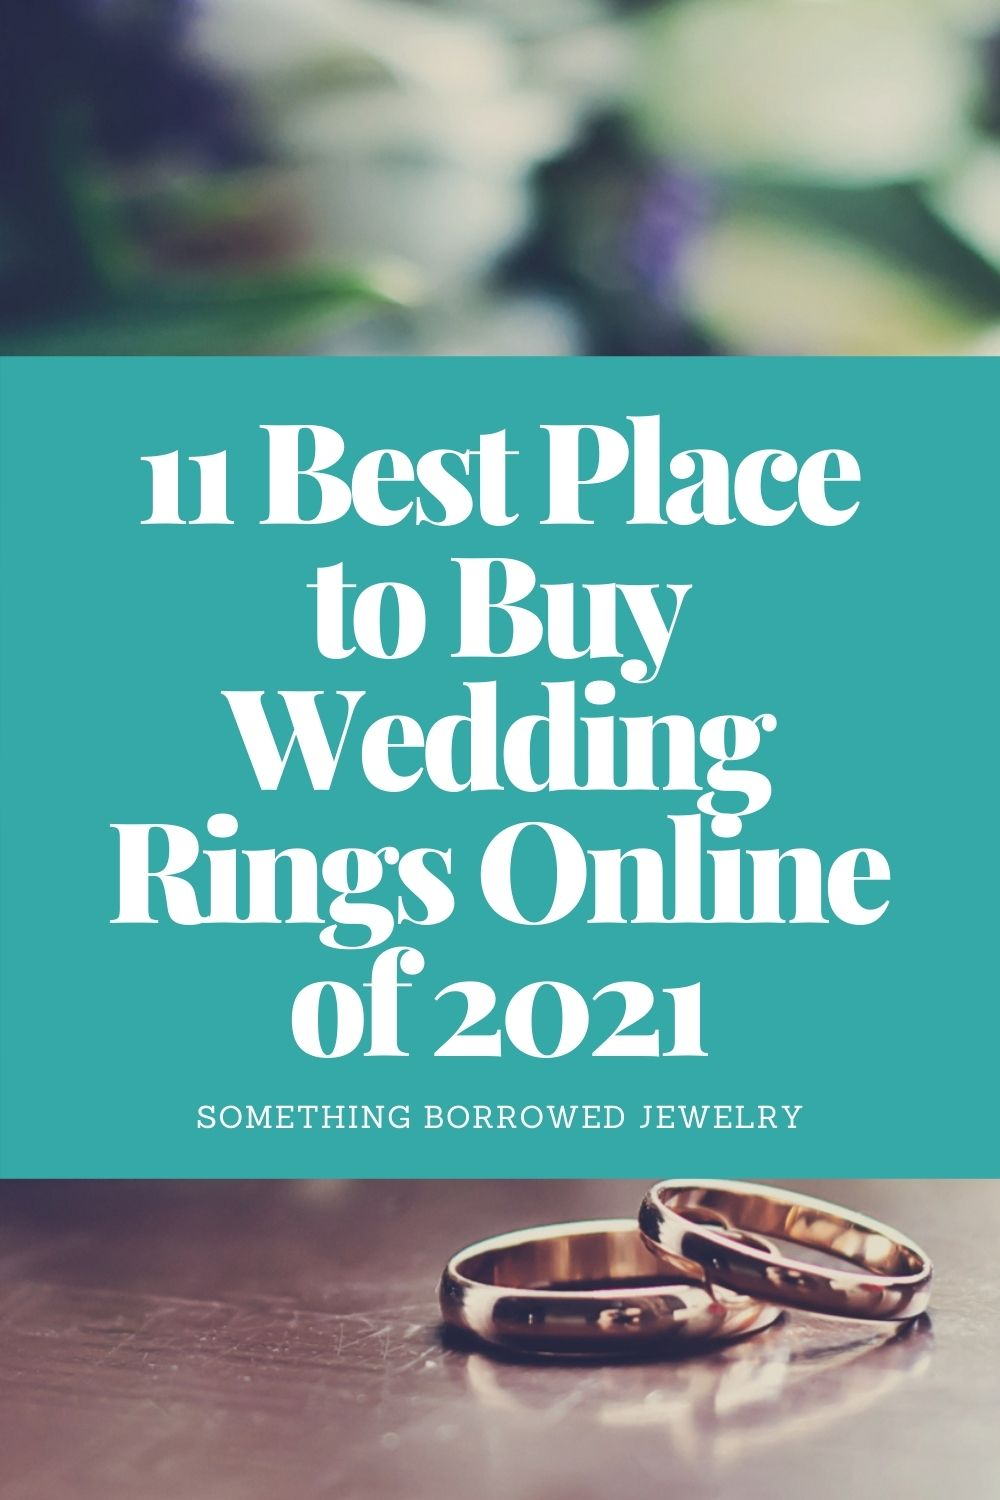 11 Best Place to Buy Wedding Rings Online of 2021 pin 2